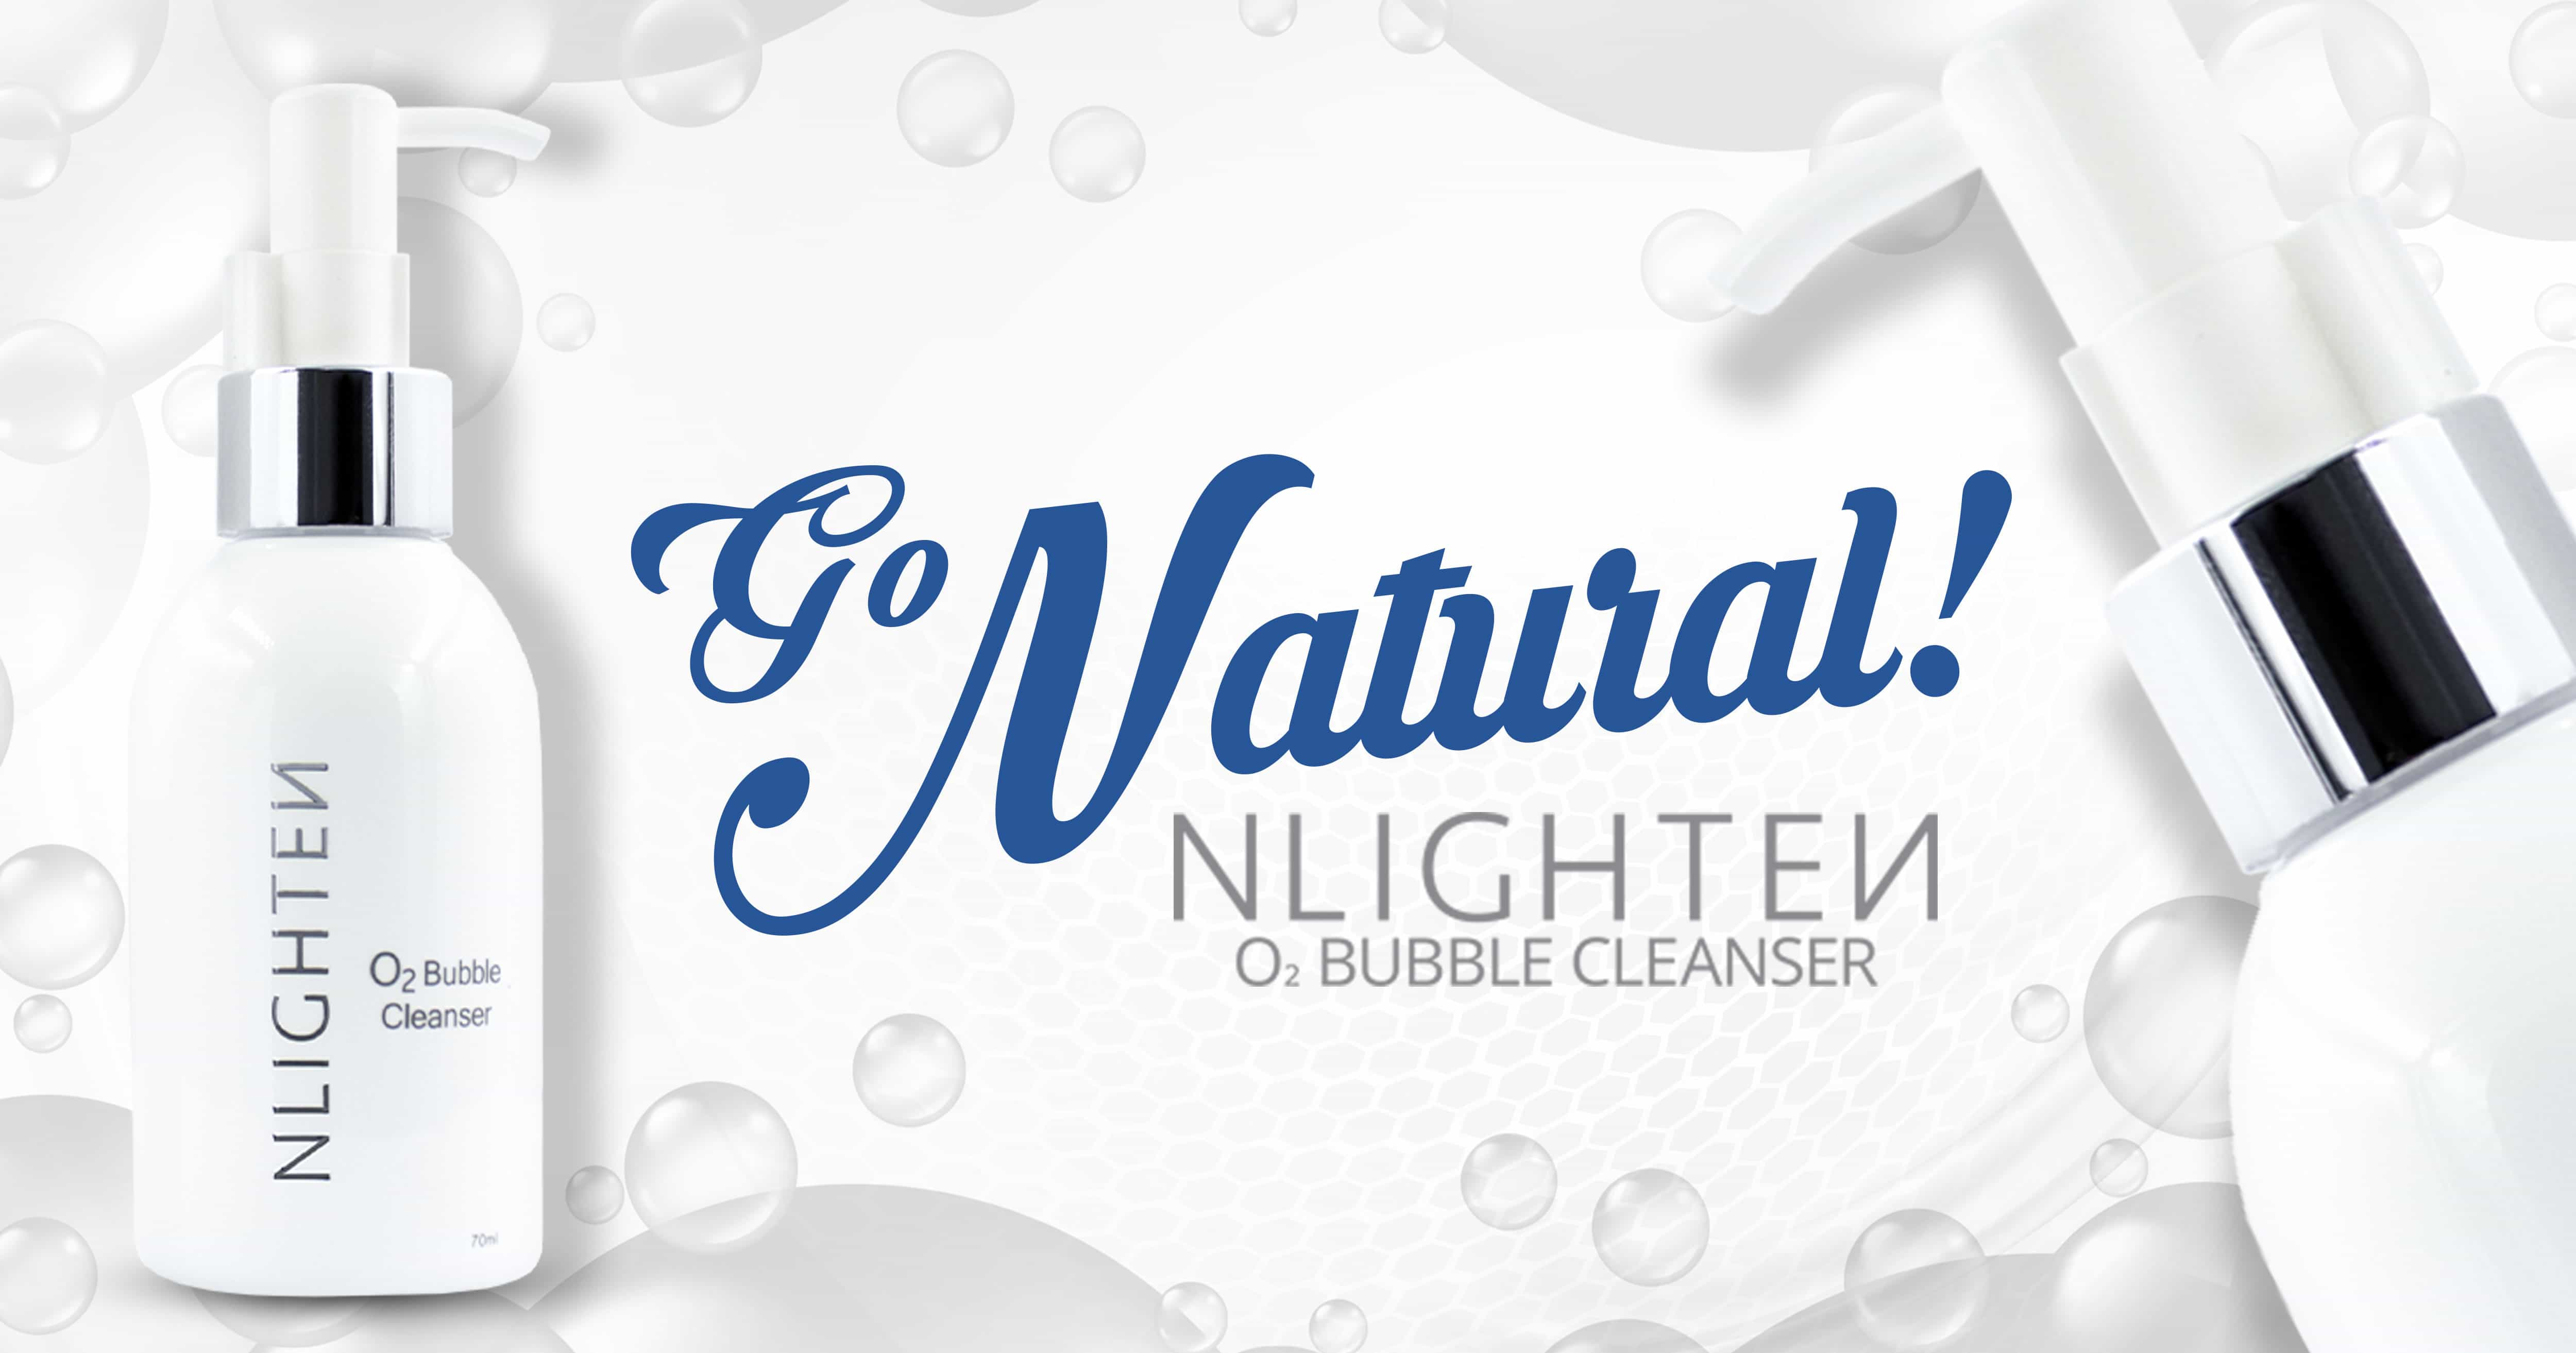 Go Natural! NLIGHTEN O2 Bubble Cleanser